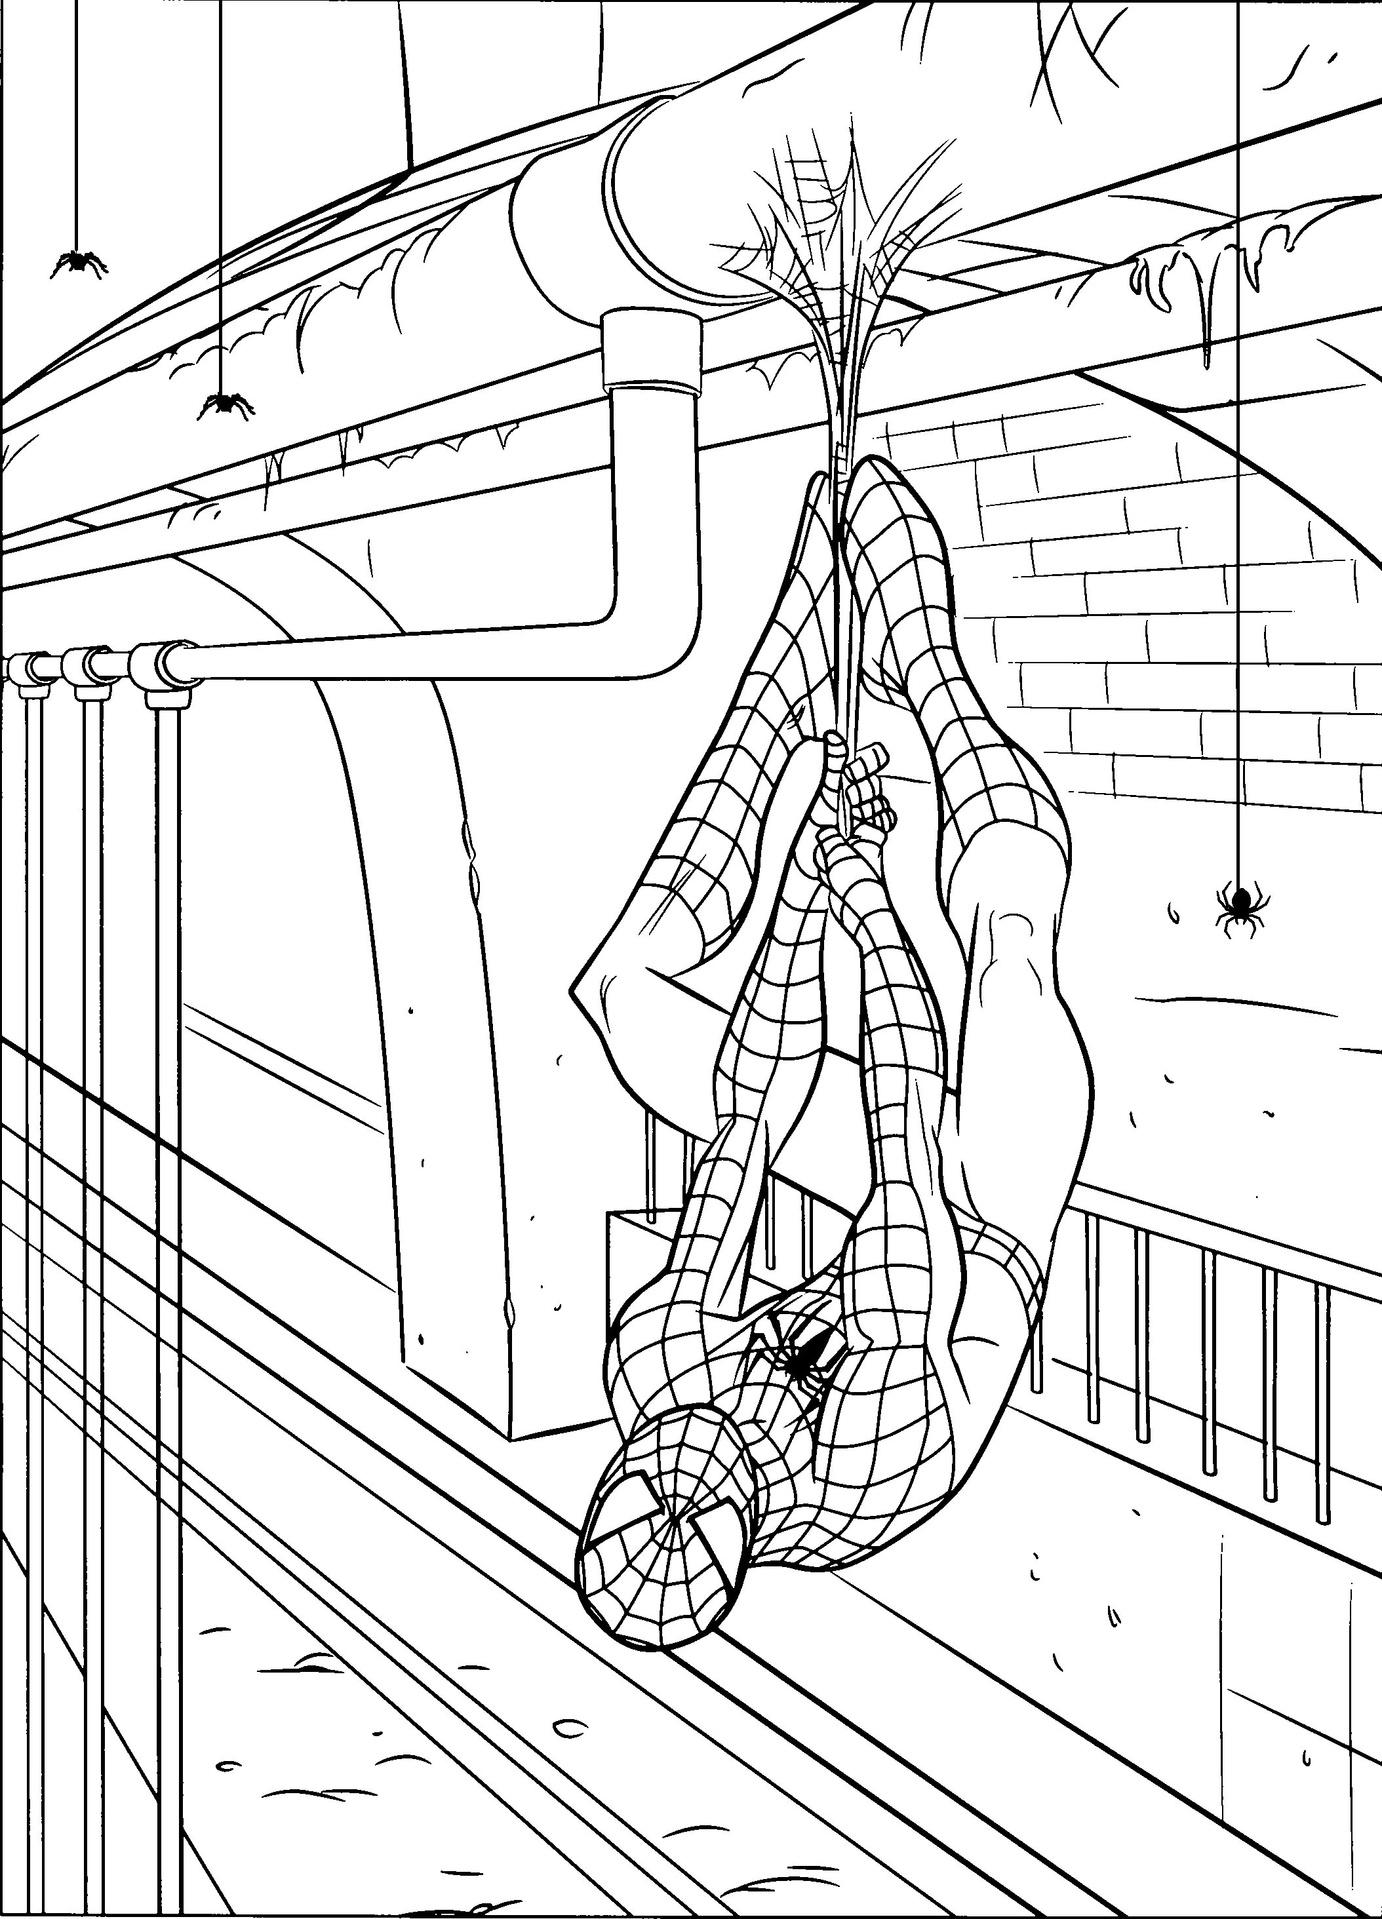 free spiderman coloring pages - Spiderman Coloring Pages Free